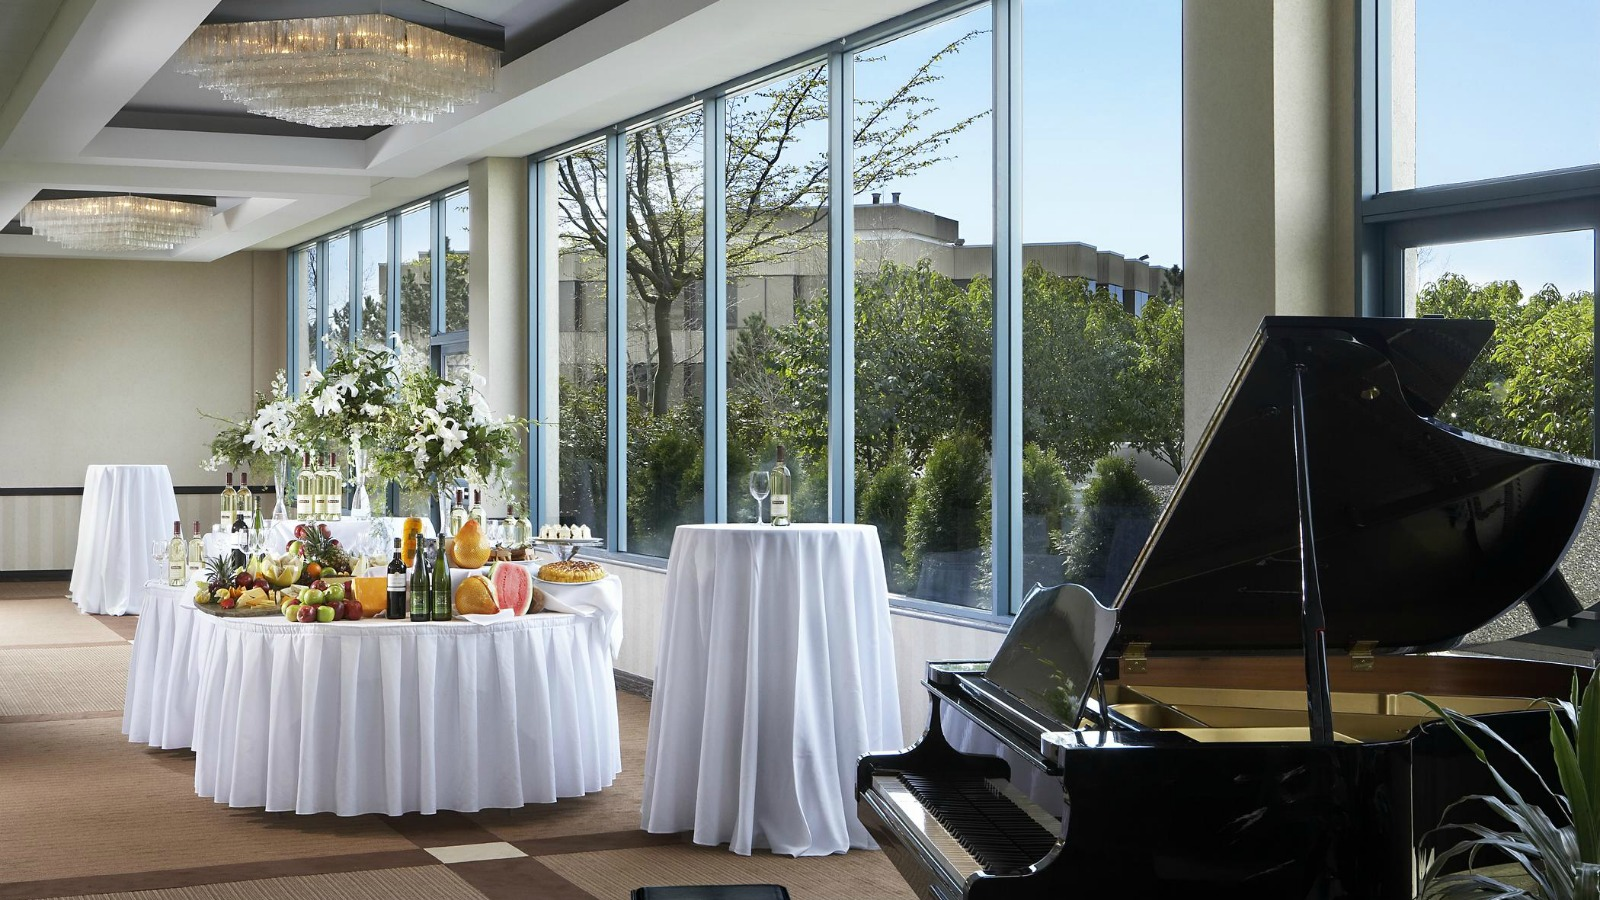 Our elegant Surrey, BC wedding venue set up for a wedding reception.